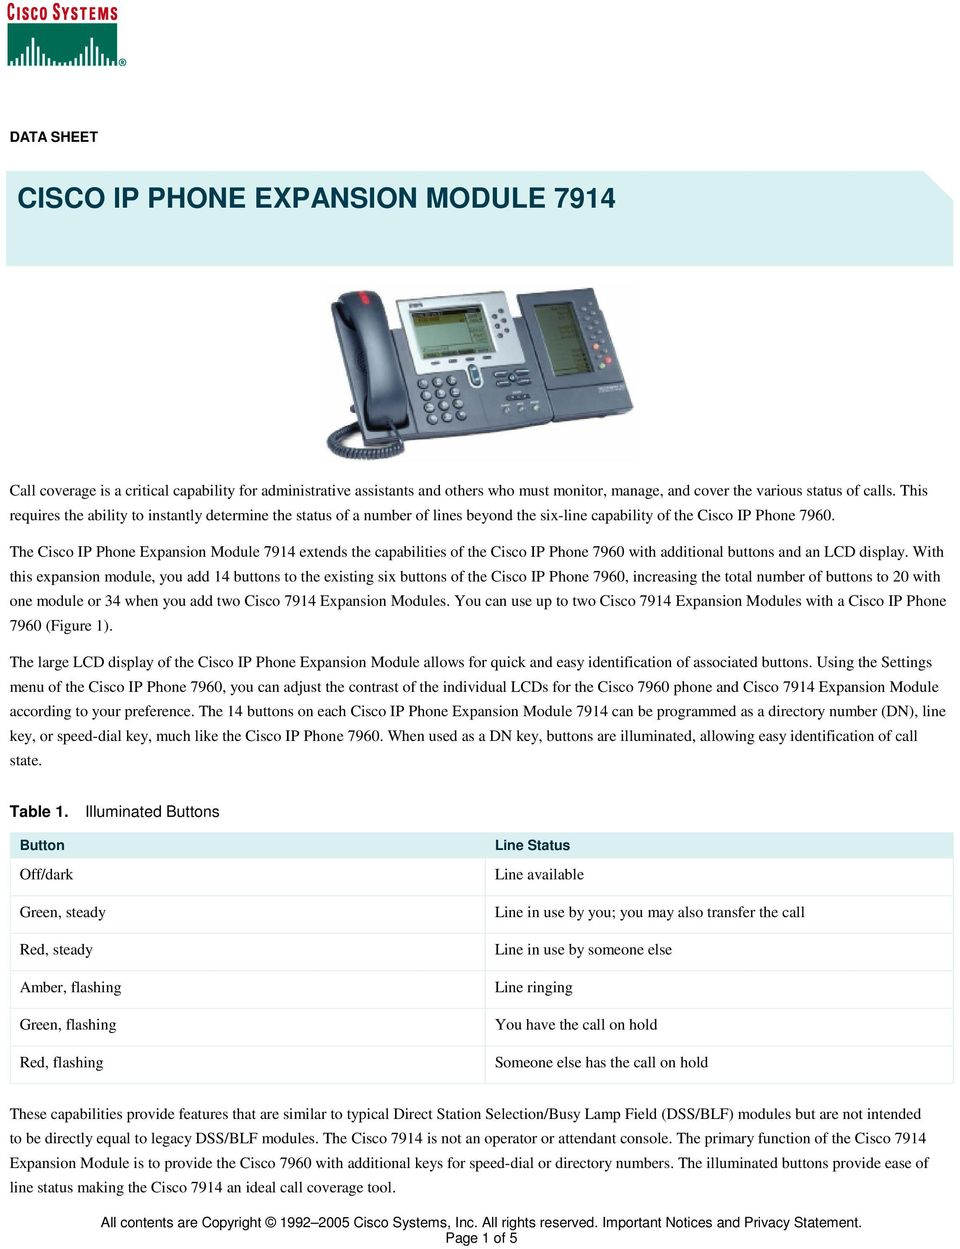 The Cisco IP Phone Expansion Module 7914 extends the capabilities of the Cisco IP Phone 7960 with additional buttons and an LCD display.